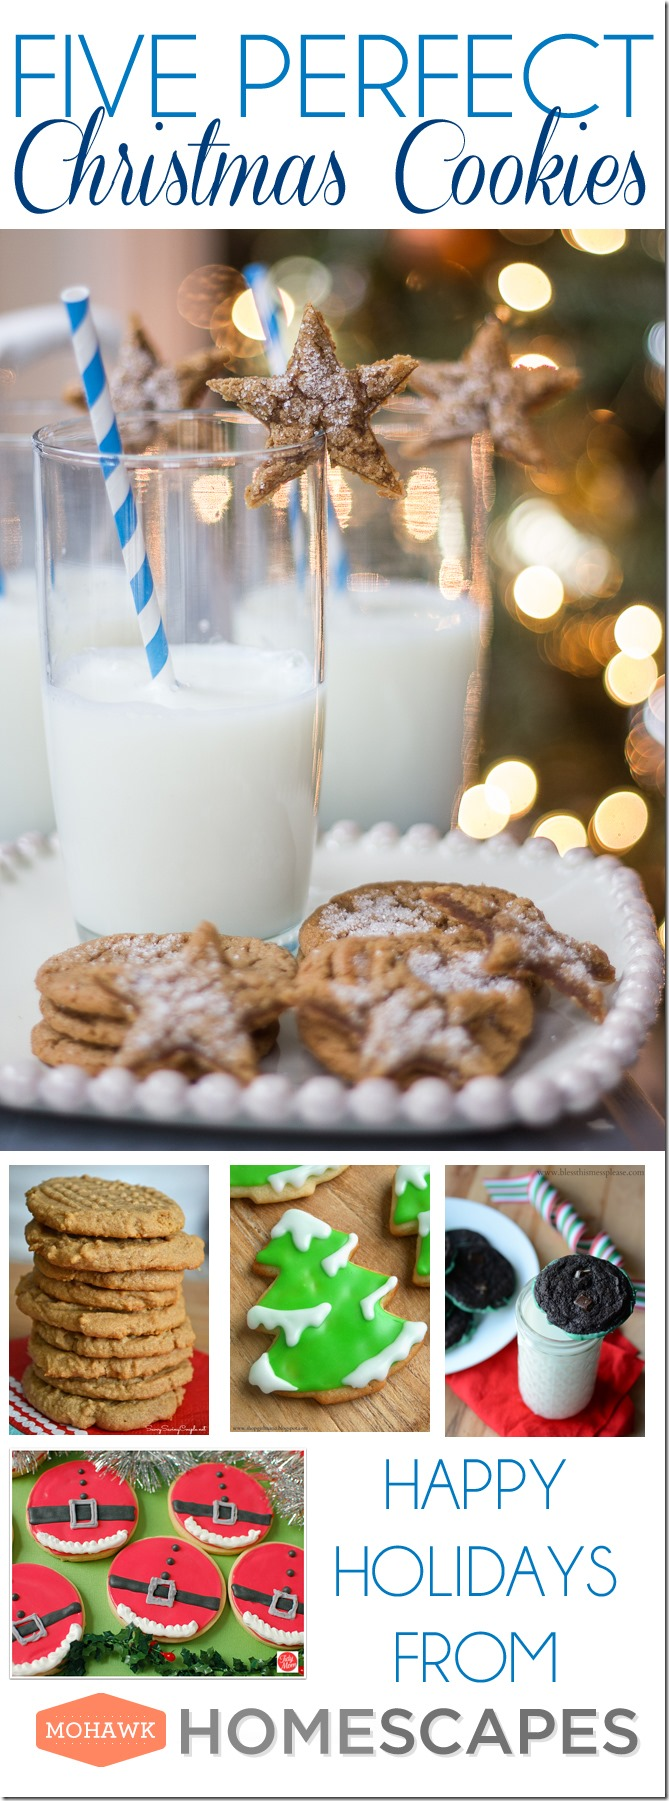 5 Perfect Christmas Cookies, 5 Perfect Christmas Cookies, Beth Bryan, unskinnyboppy, Mohawk Homescapes, holiday cookies